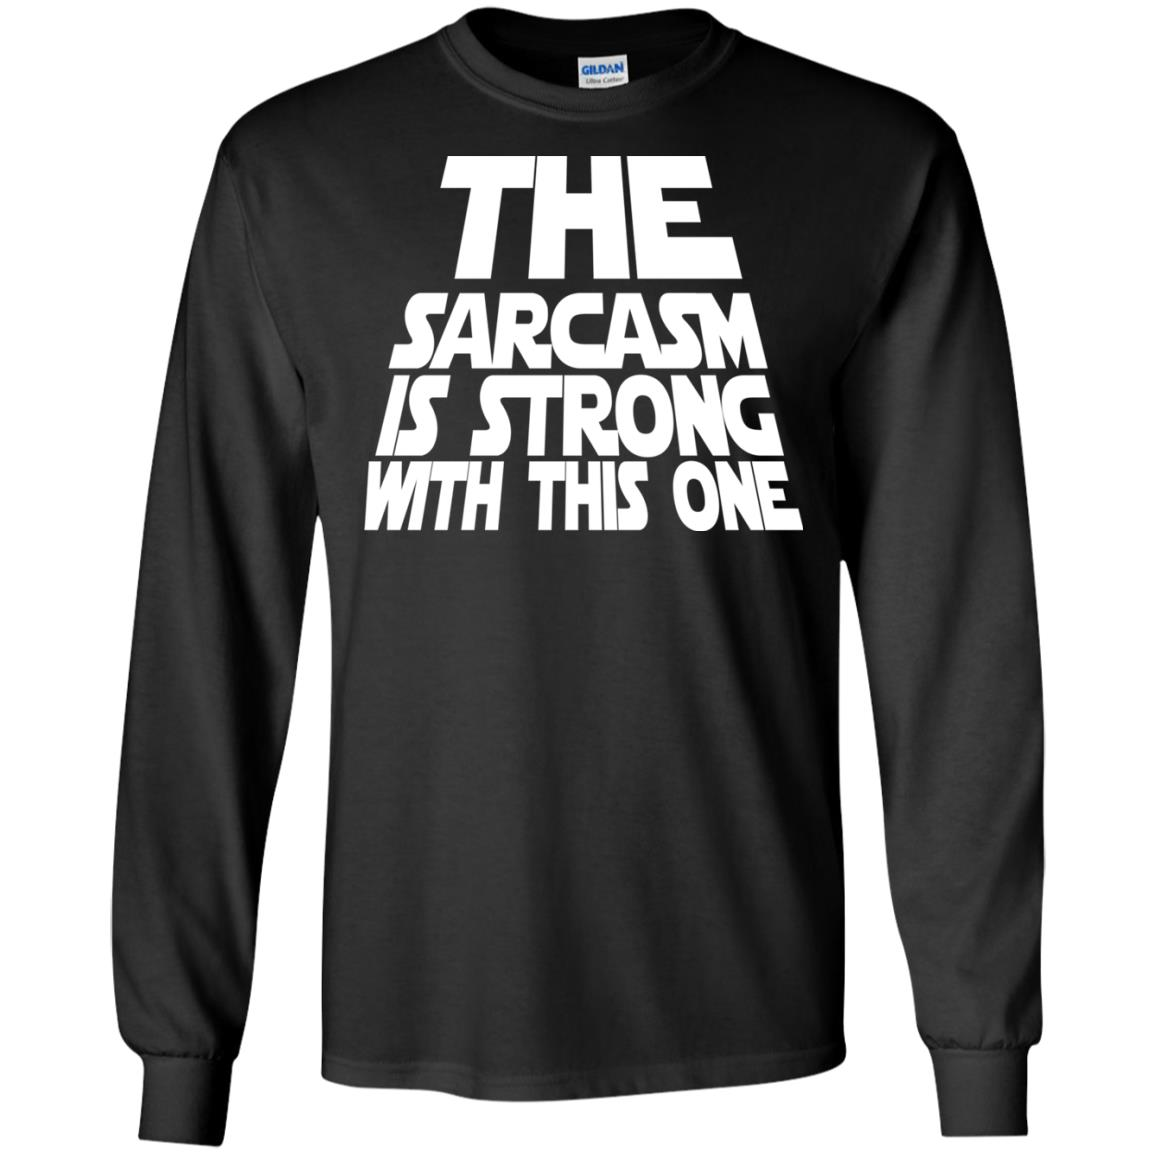 image 1794 - The Sarcasm is strong with this one shirt